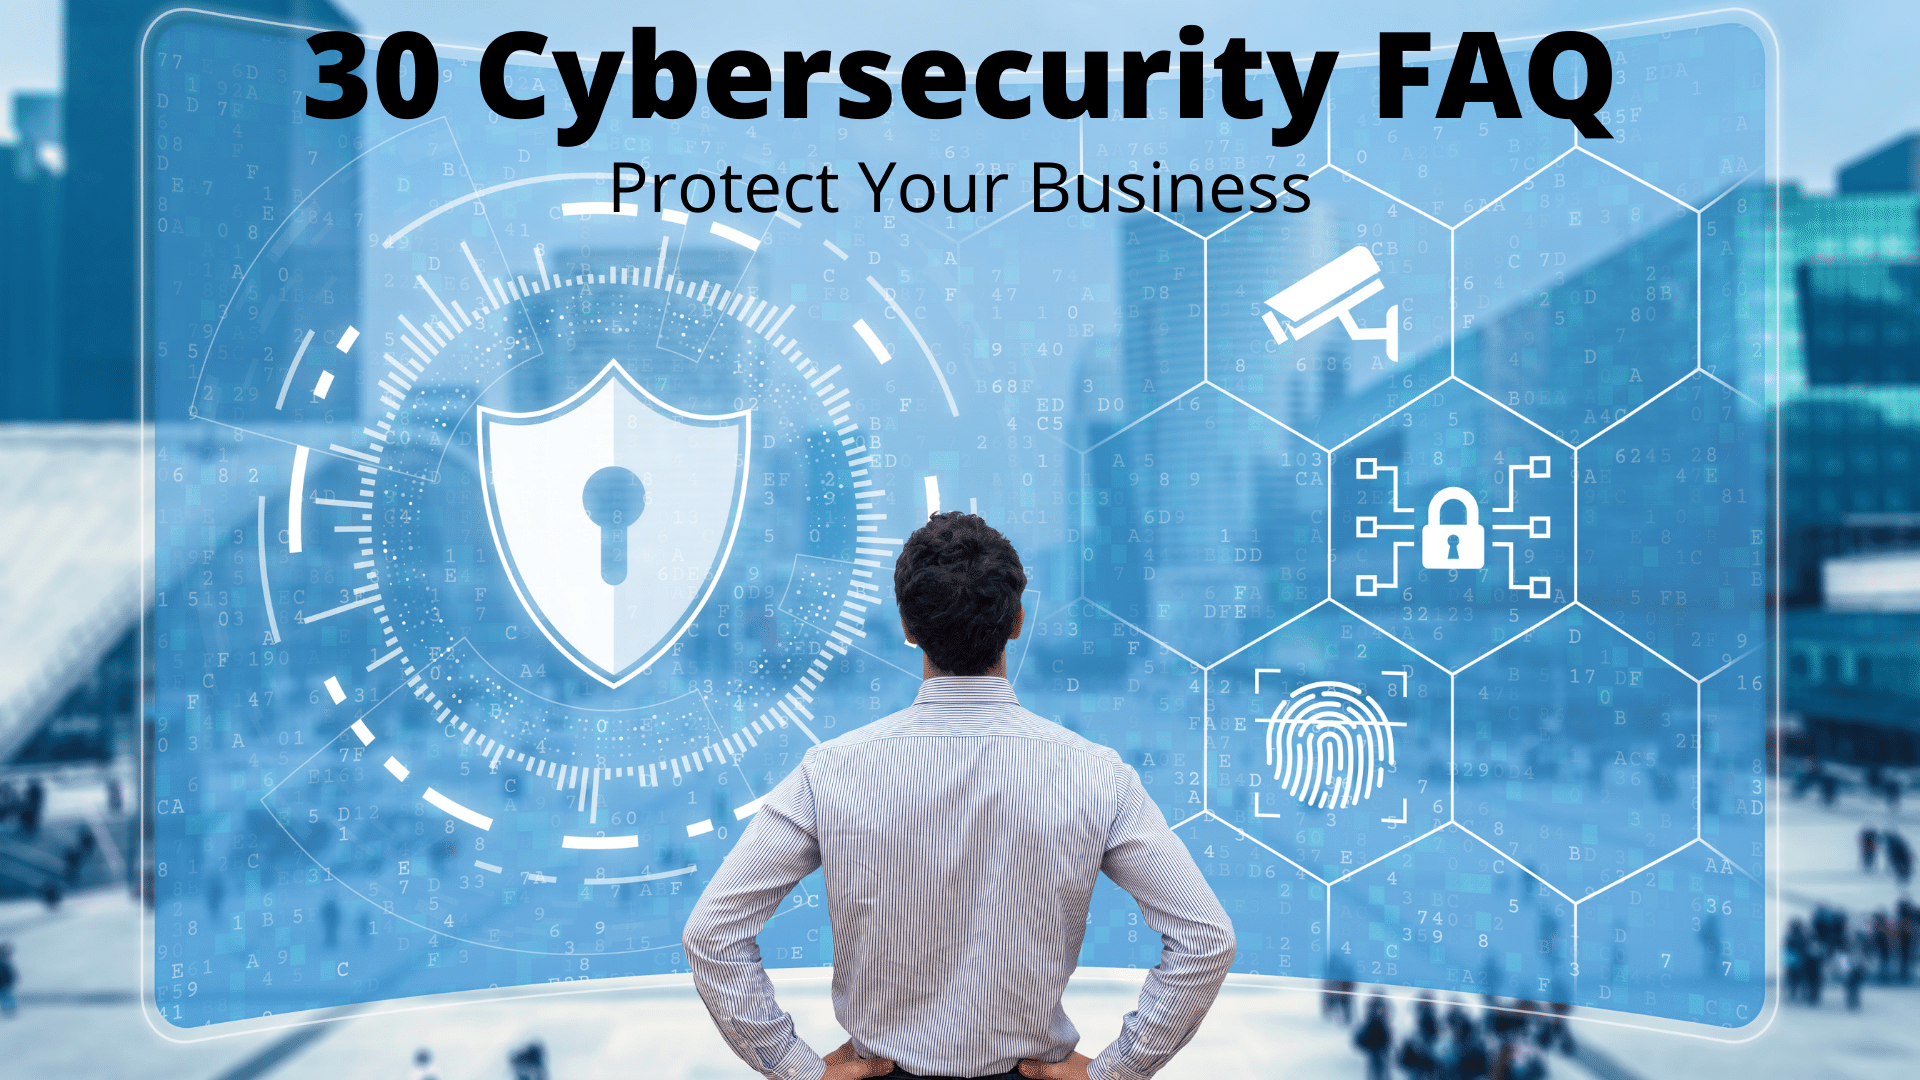 30 Cybersecurity FAQ. Protect Your Business.